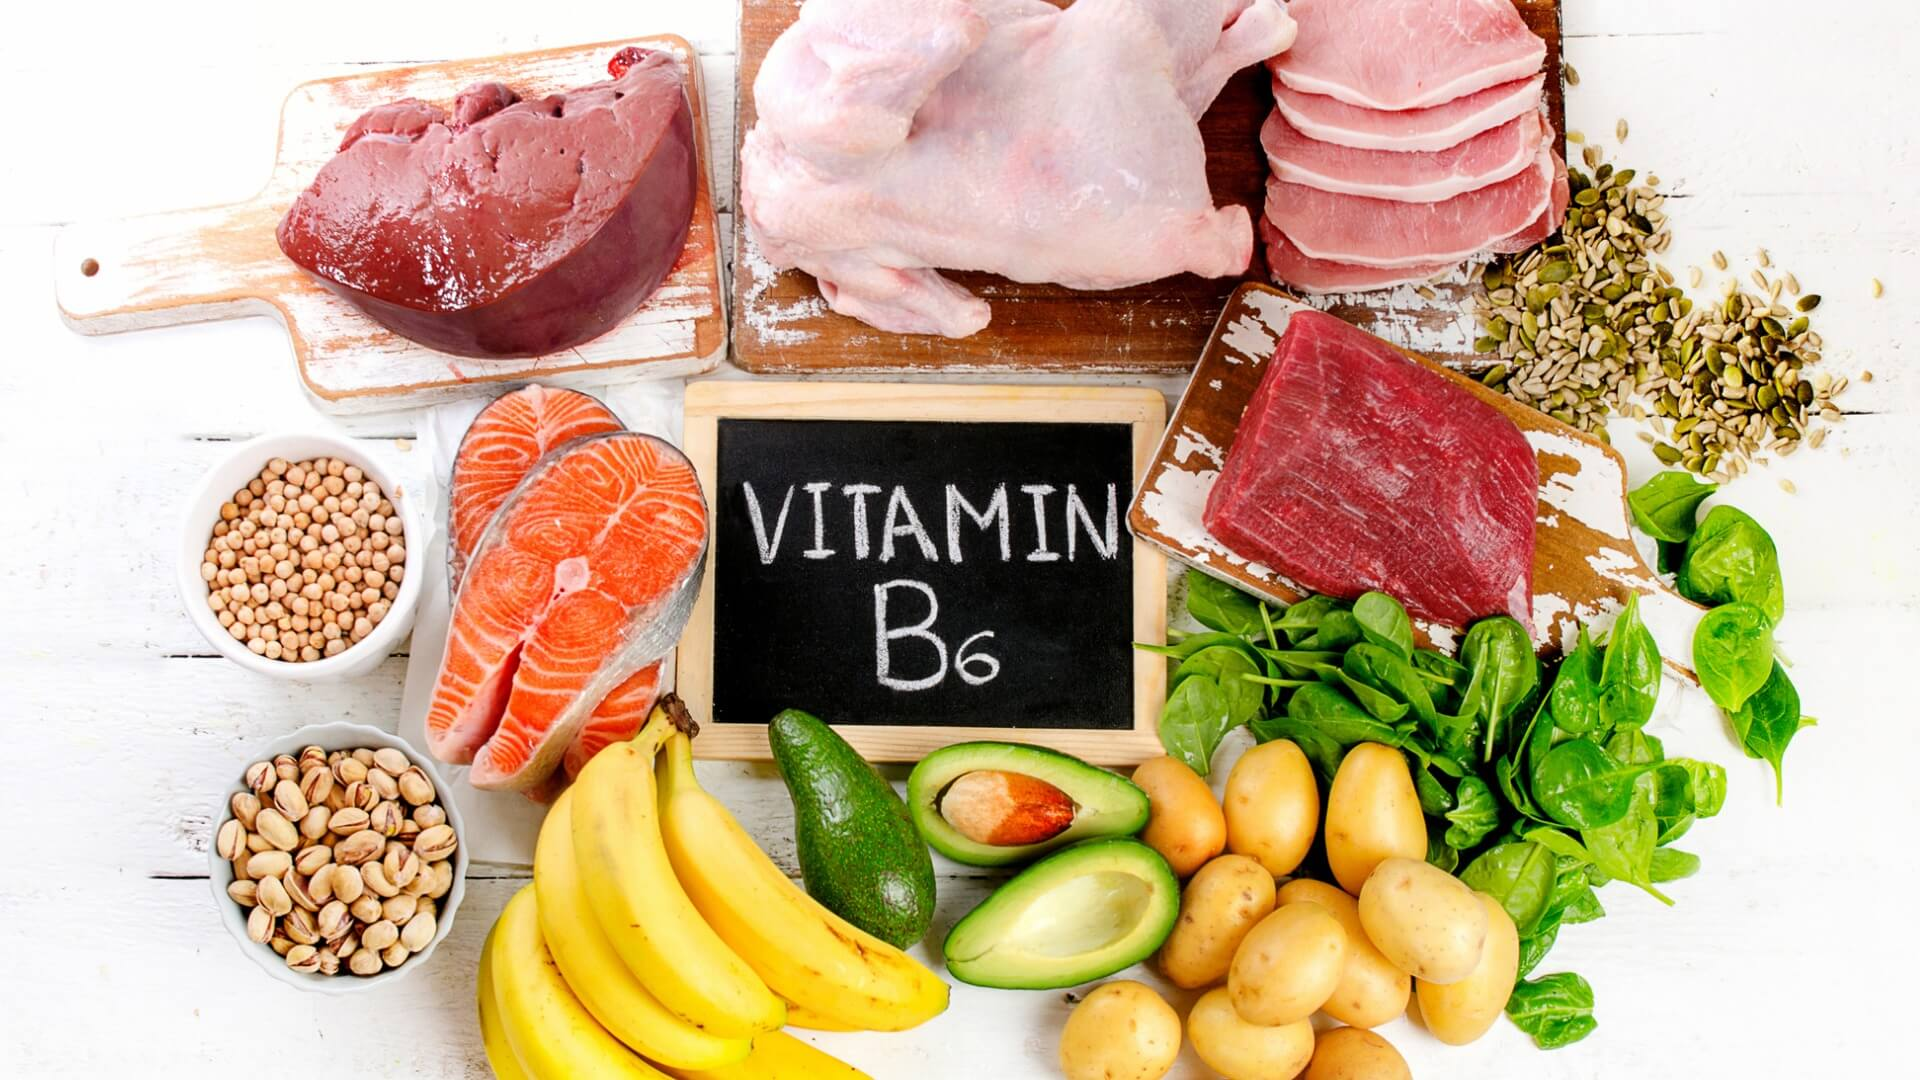 Your Vitamin B6 Level Trait